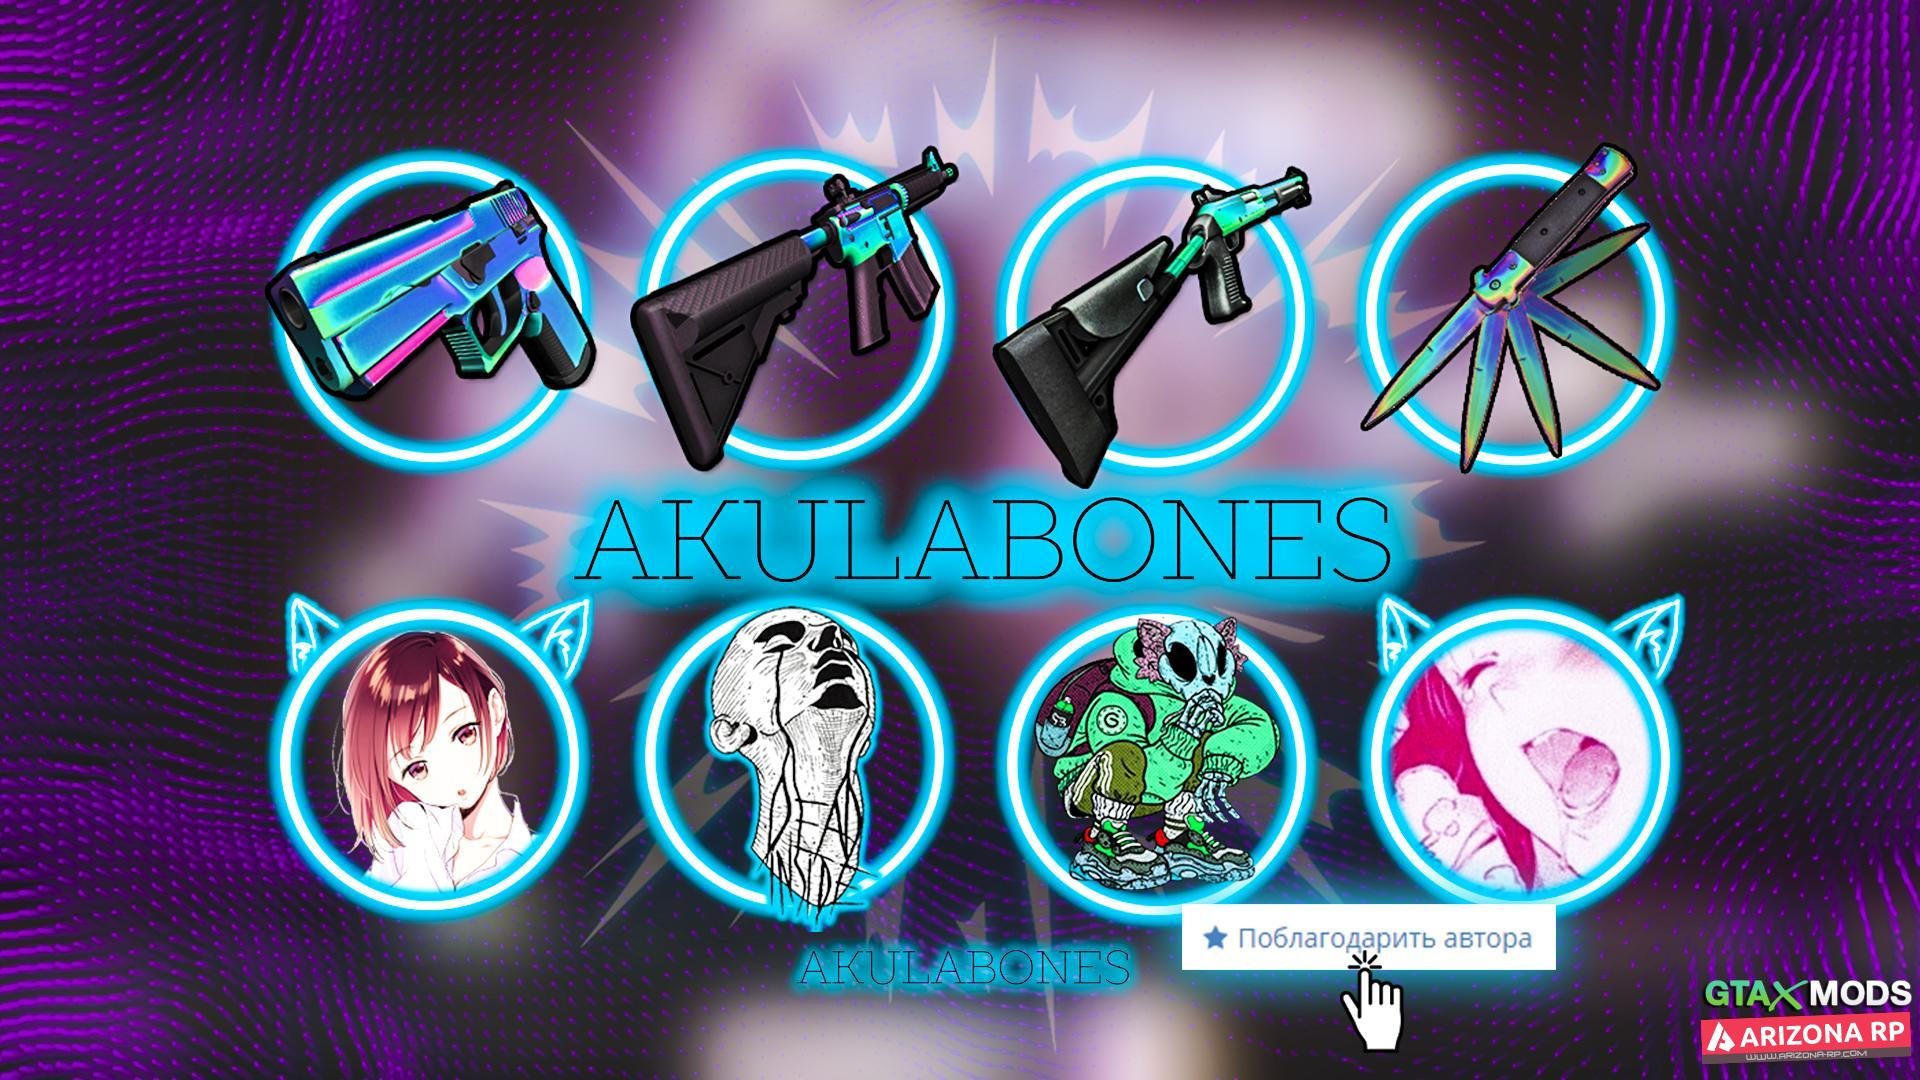 👽  neon icons | by  AkulaBones  👽